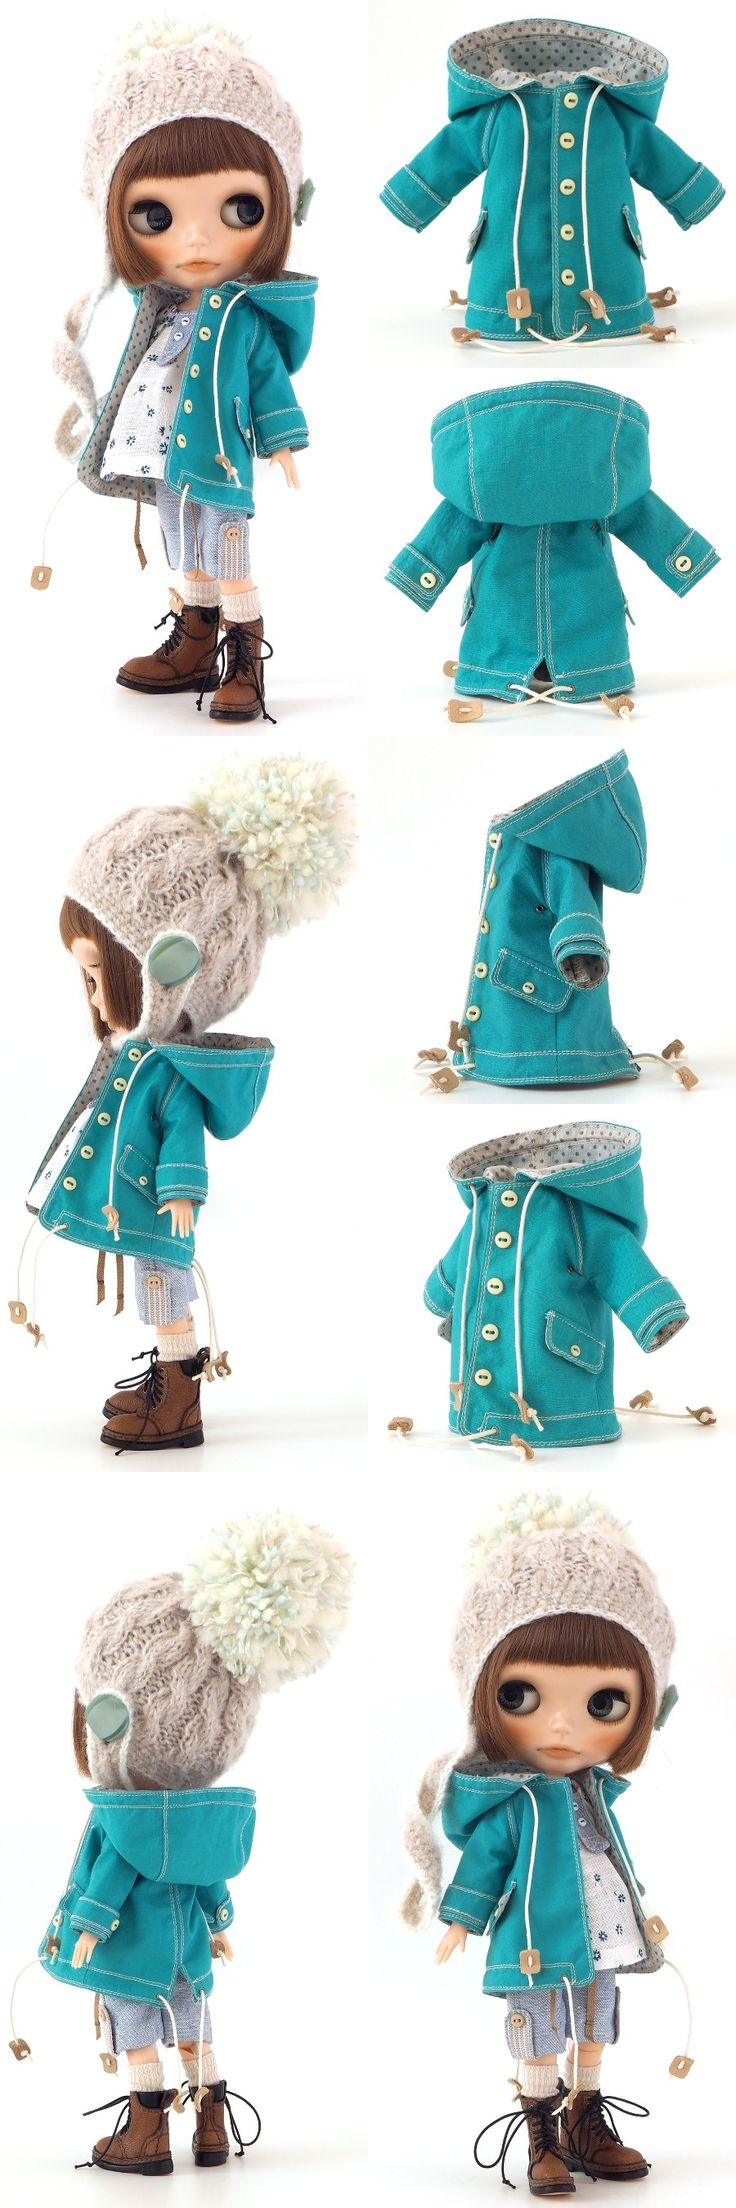 ** Blythe outfit ** Lucalily 467 ** - ヤフオク!